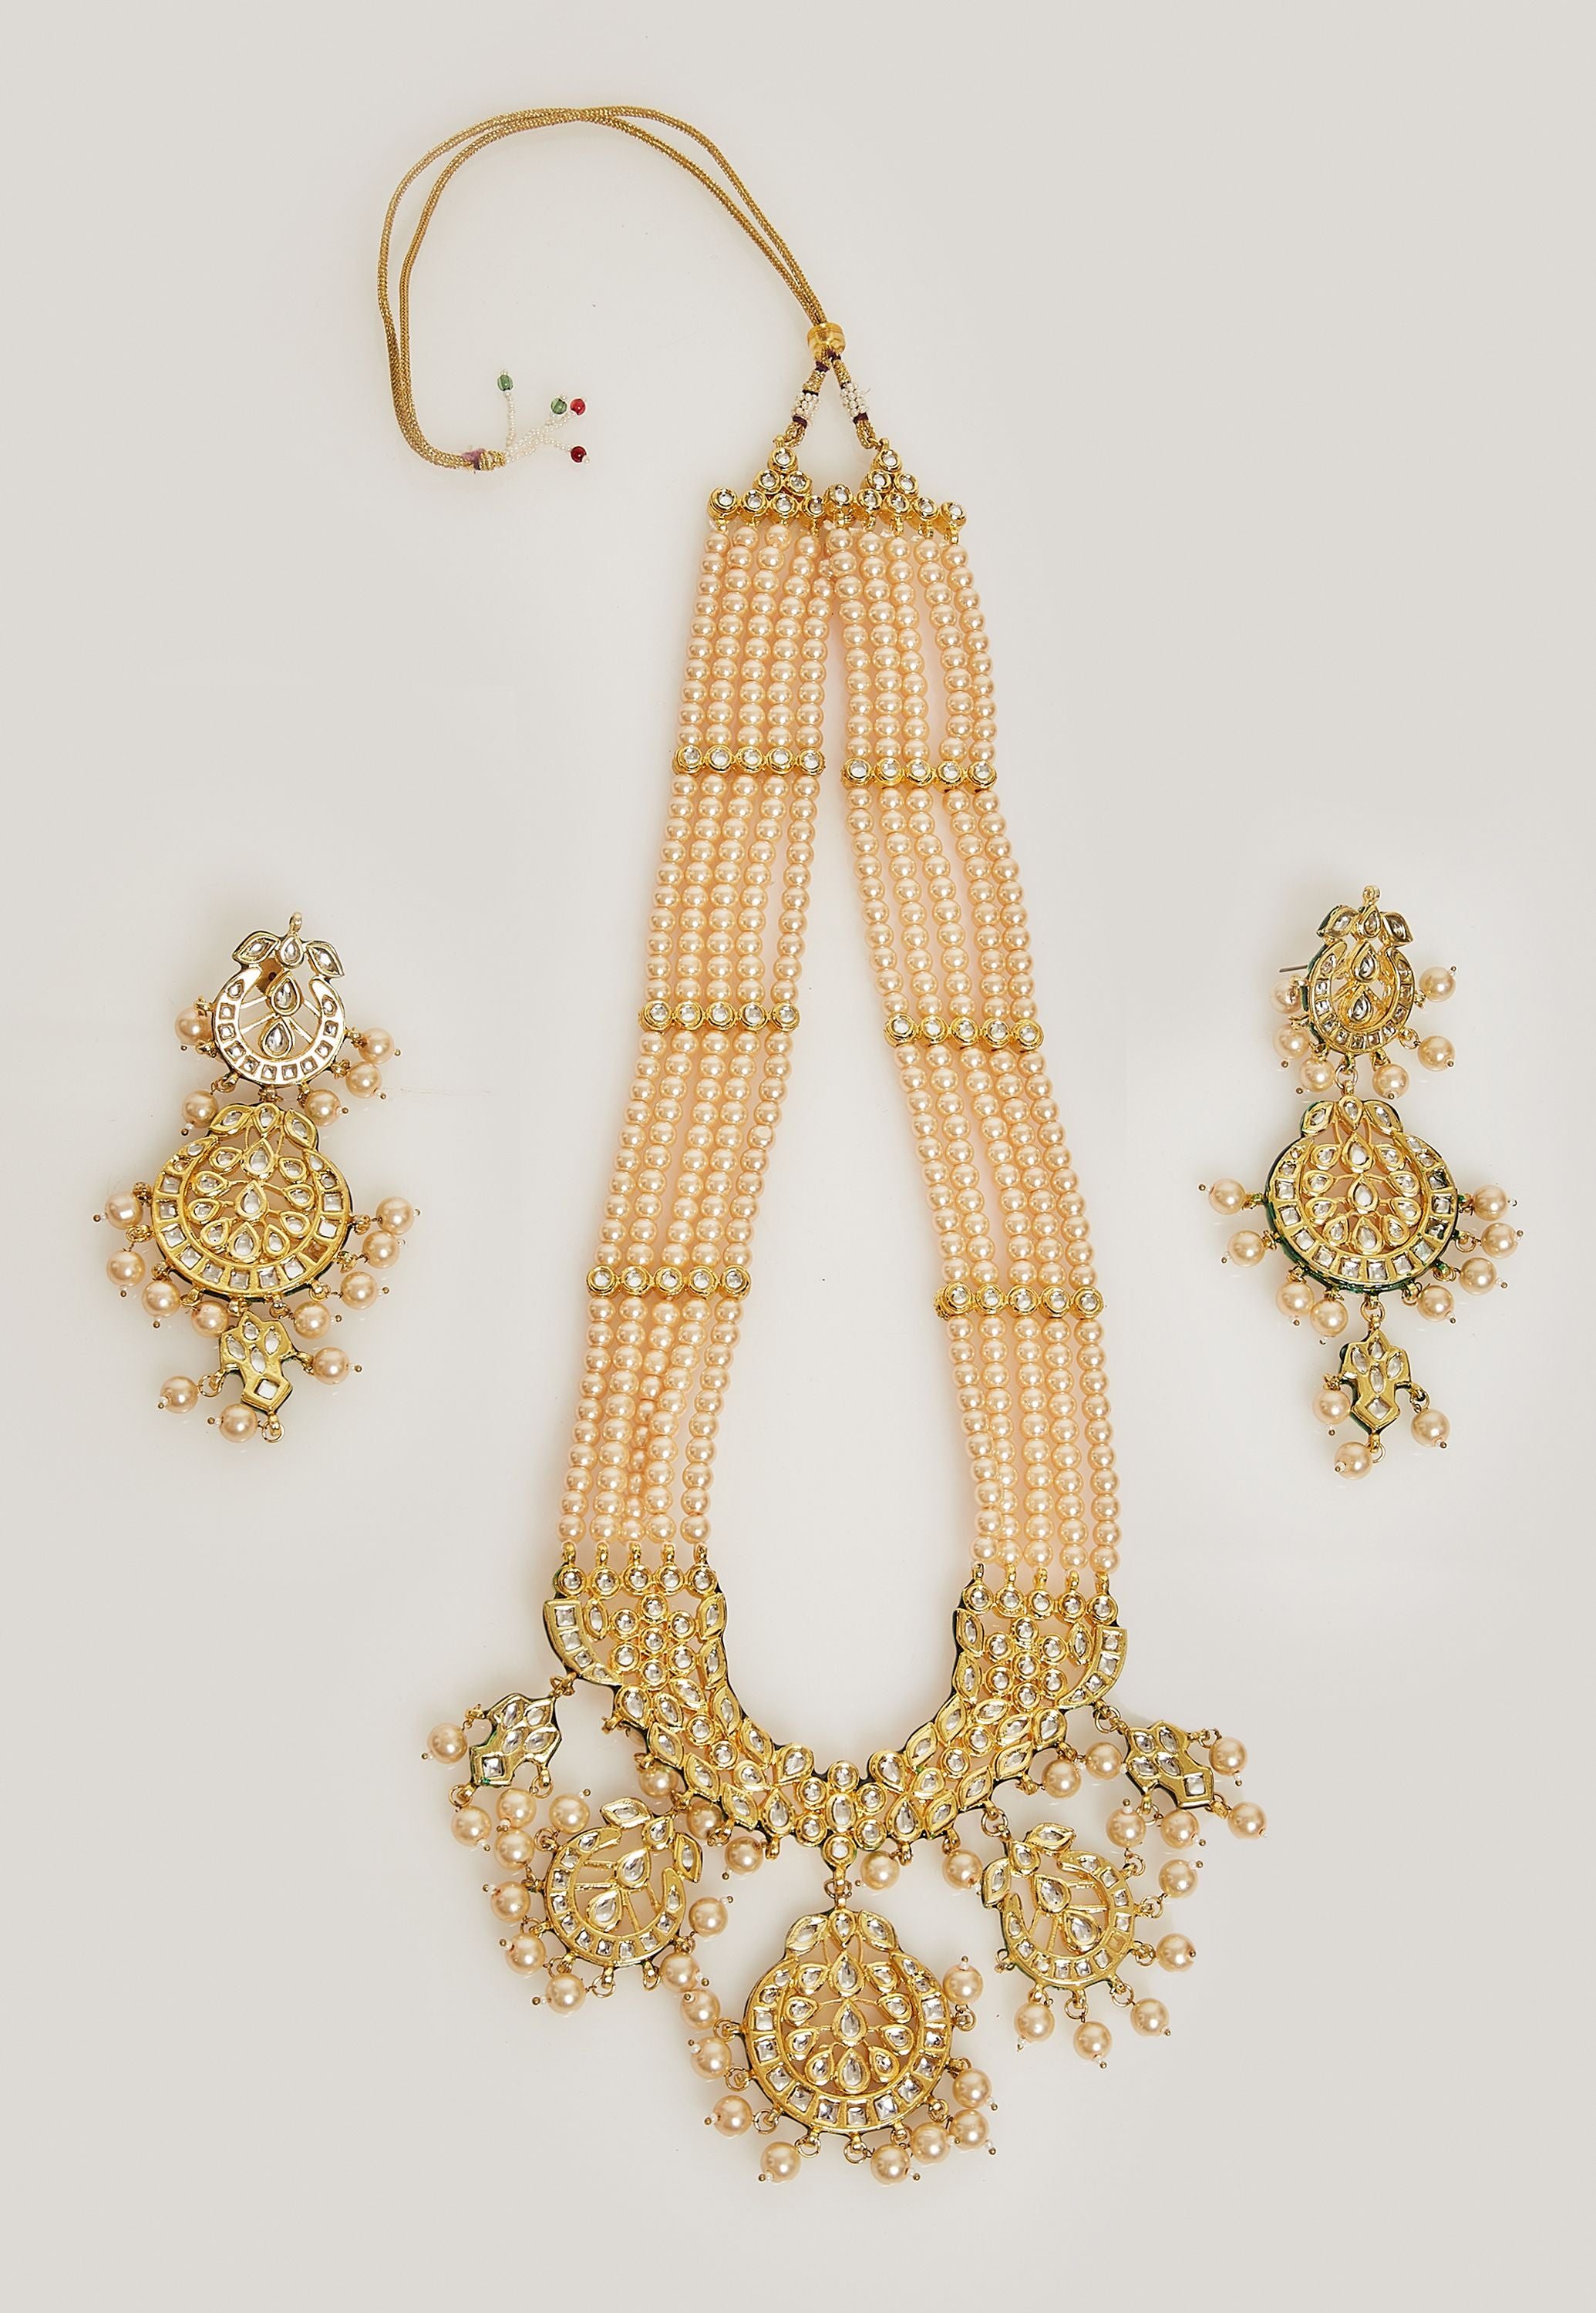 KUNDAN PEARL LONG RANI NECKLACE SET BY TINTED TEAL